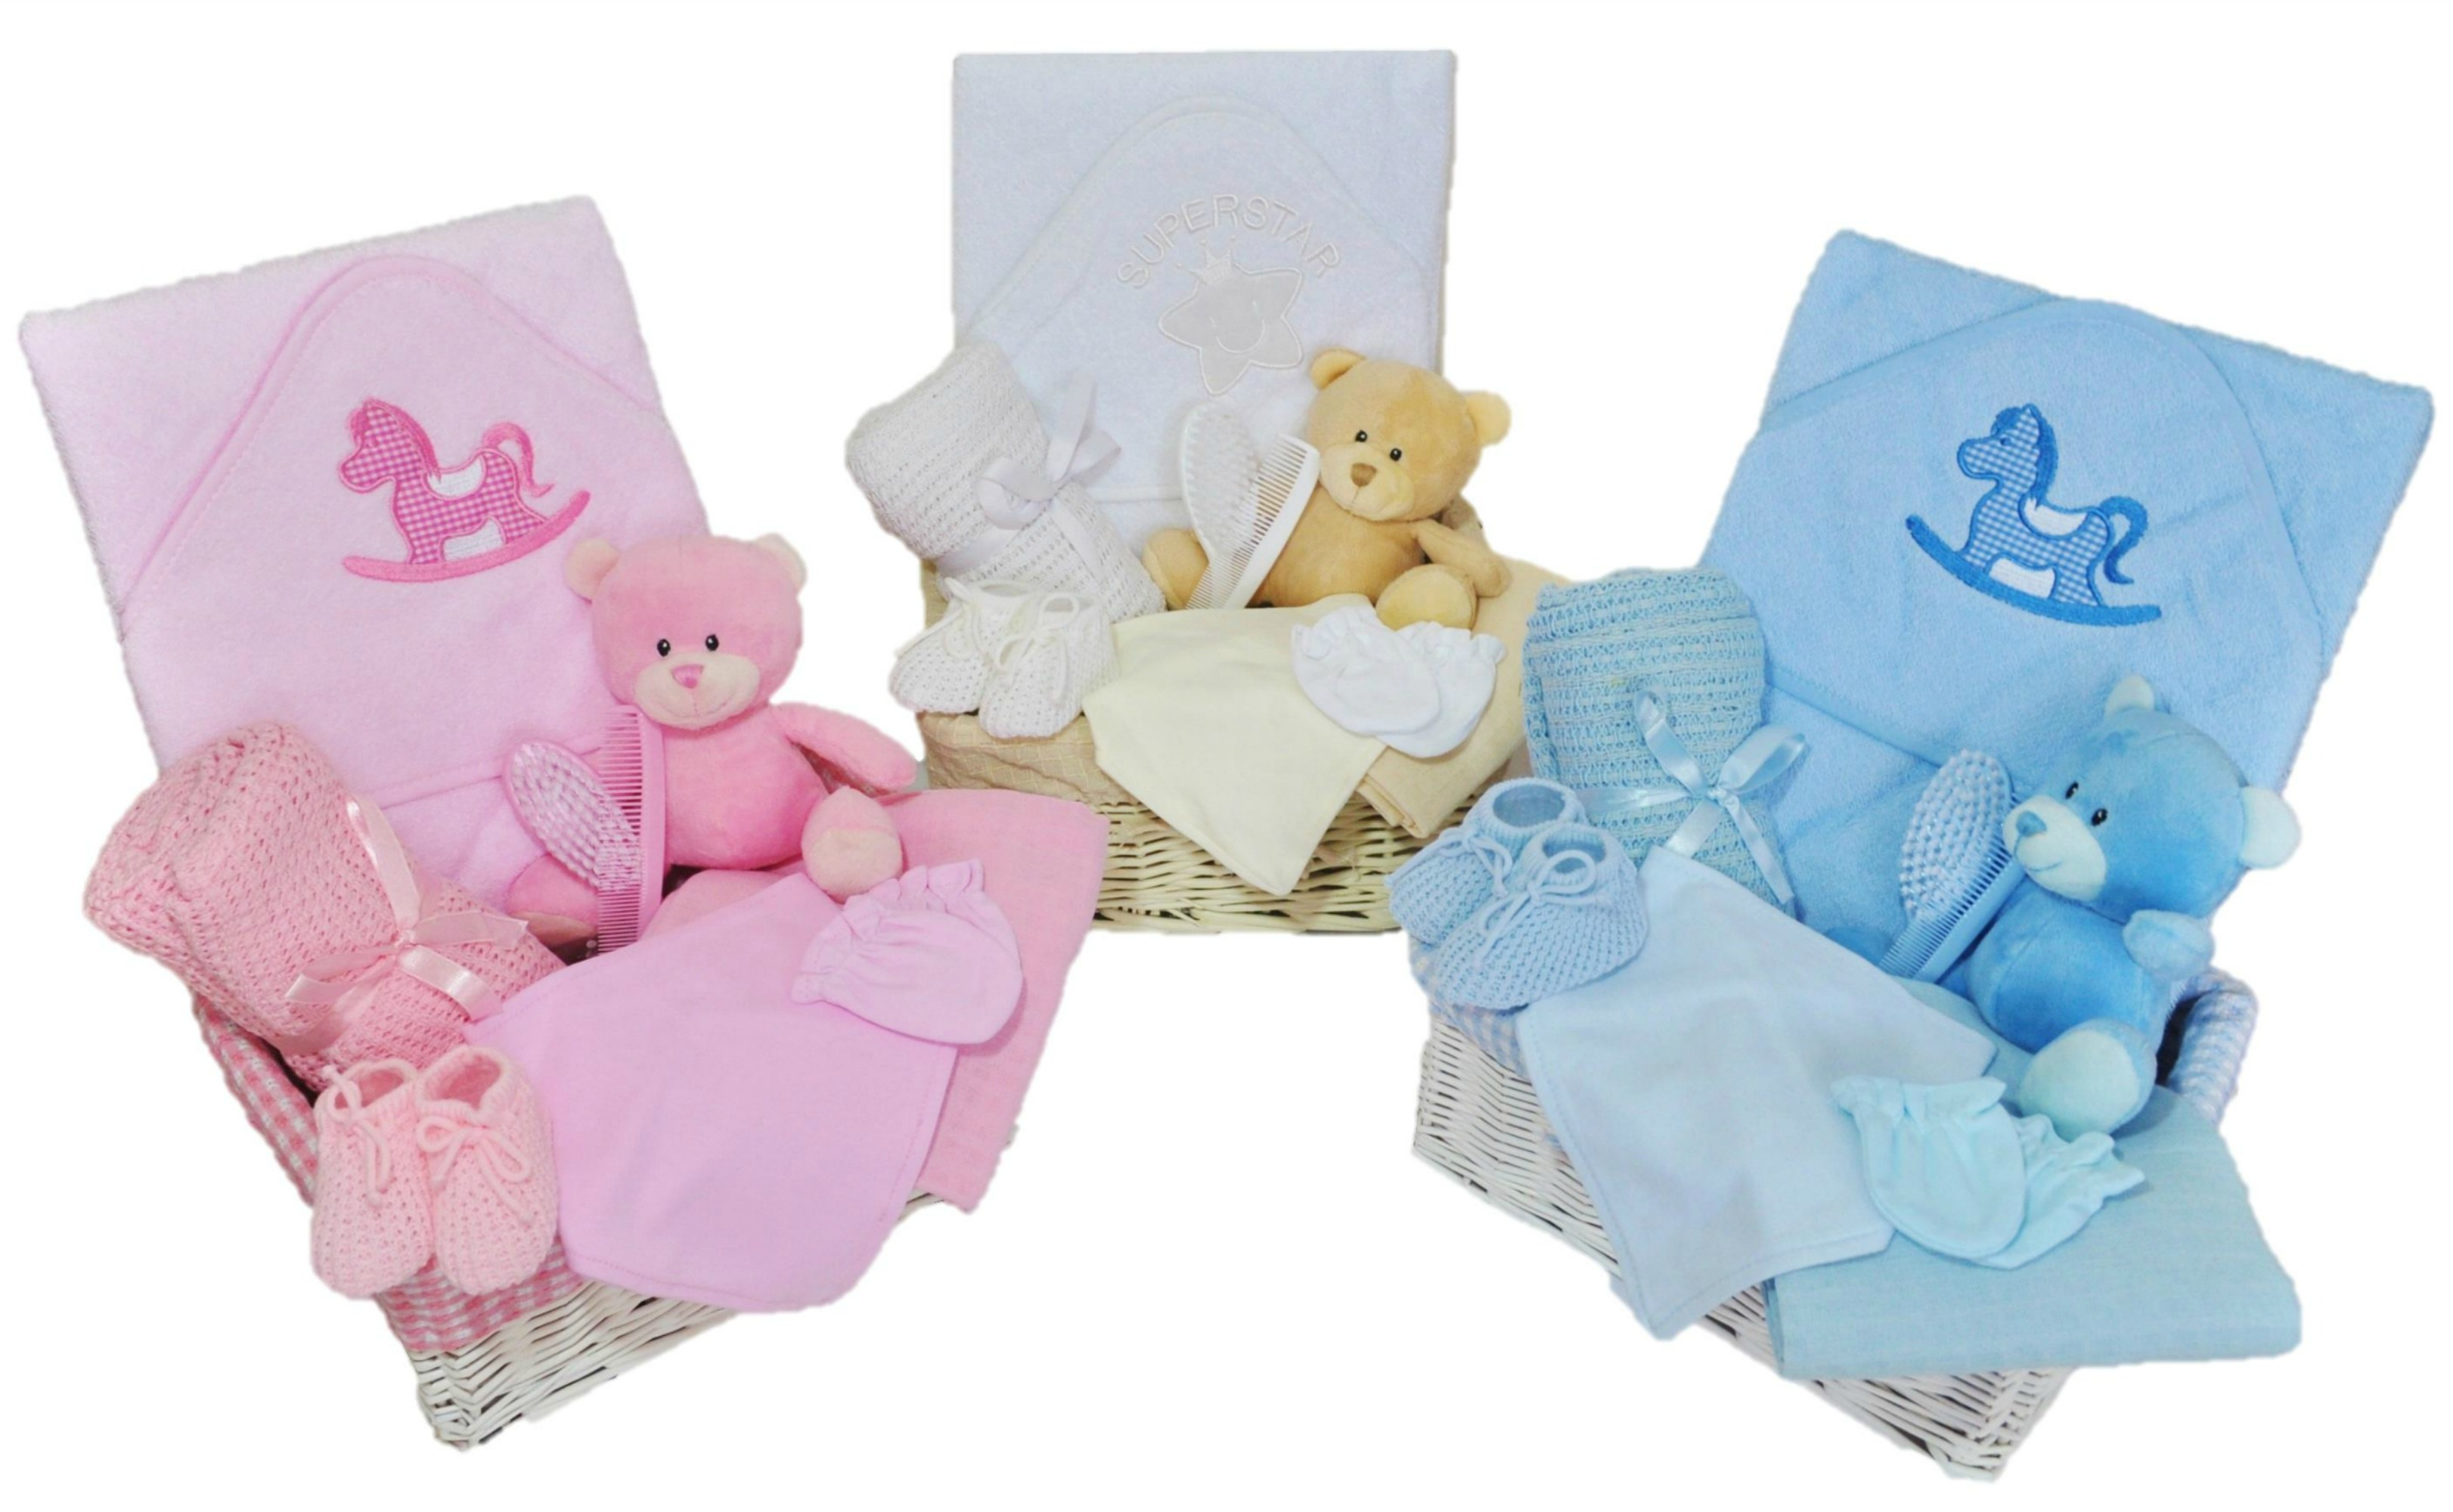 Baby Gift Hamper Uk : Baby hampers nappy cakes and gifts uk dinkytoes